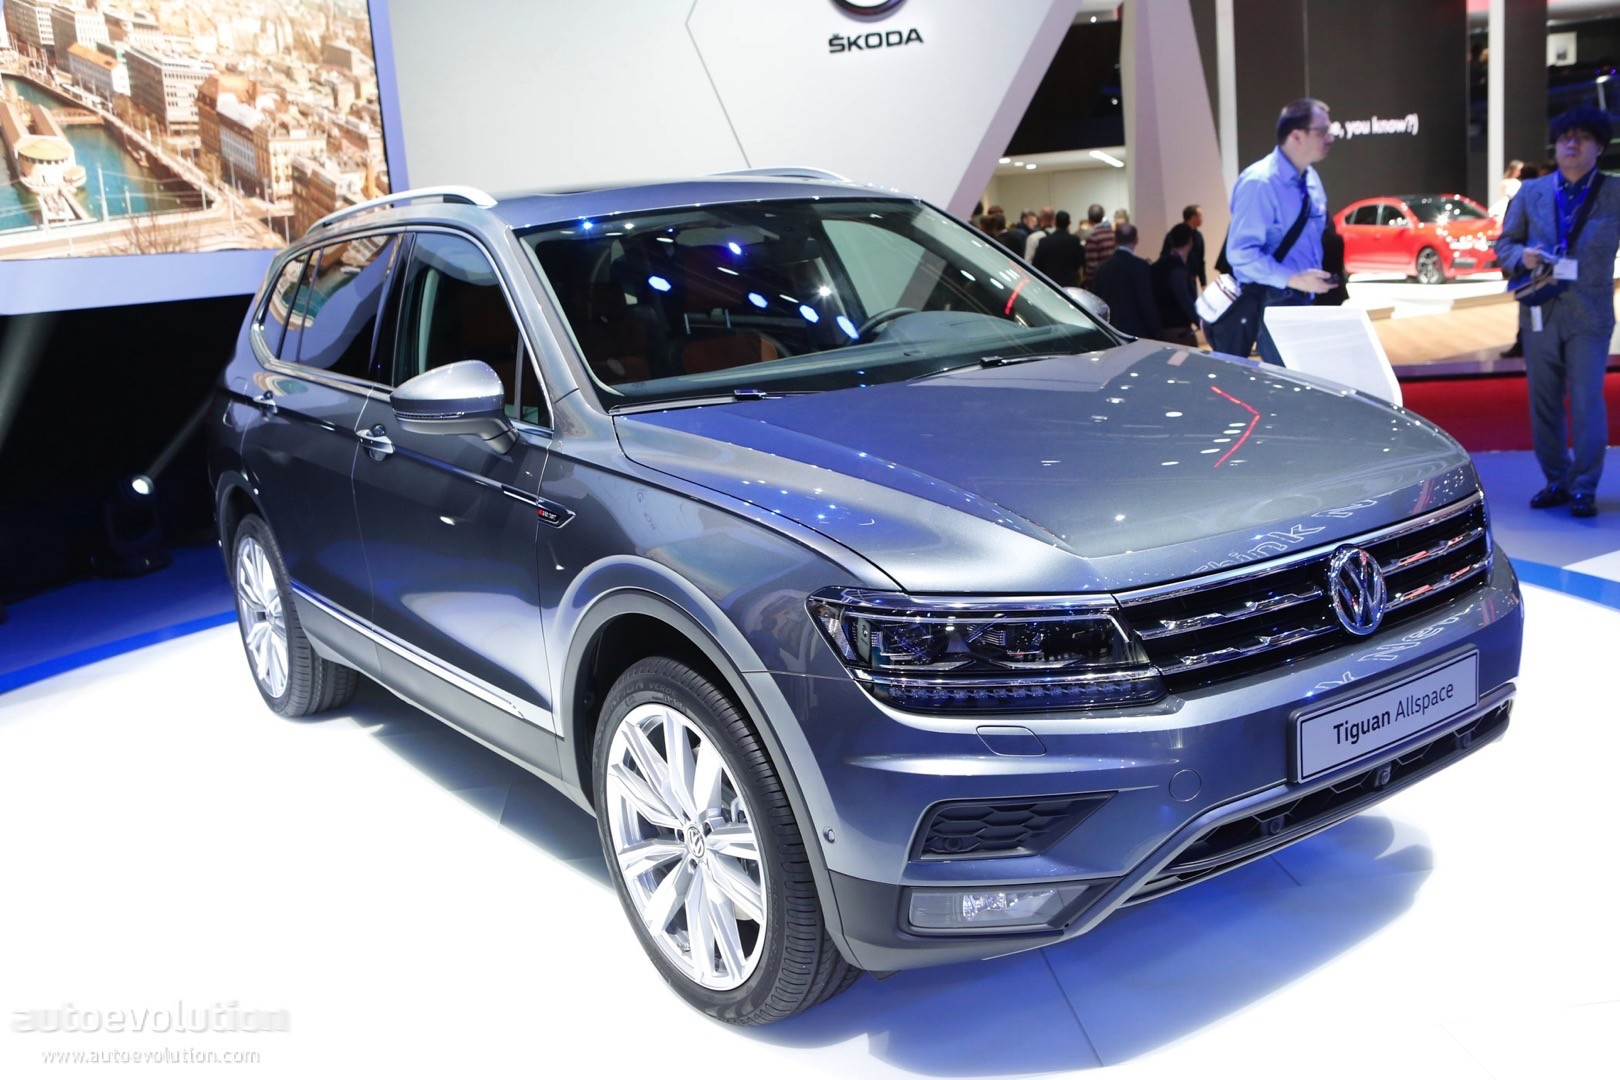 2018 volkswagen tiguan allspace specs options and prices. Black Bedroom Furniture Sets. Home Design Ideas